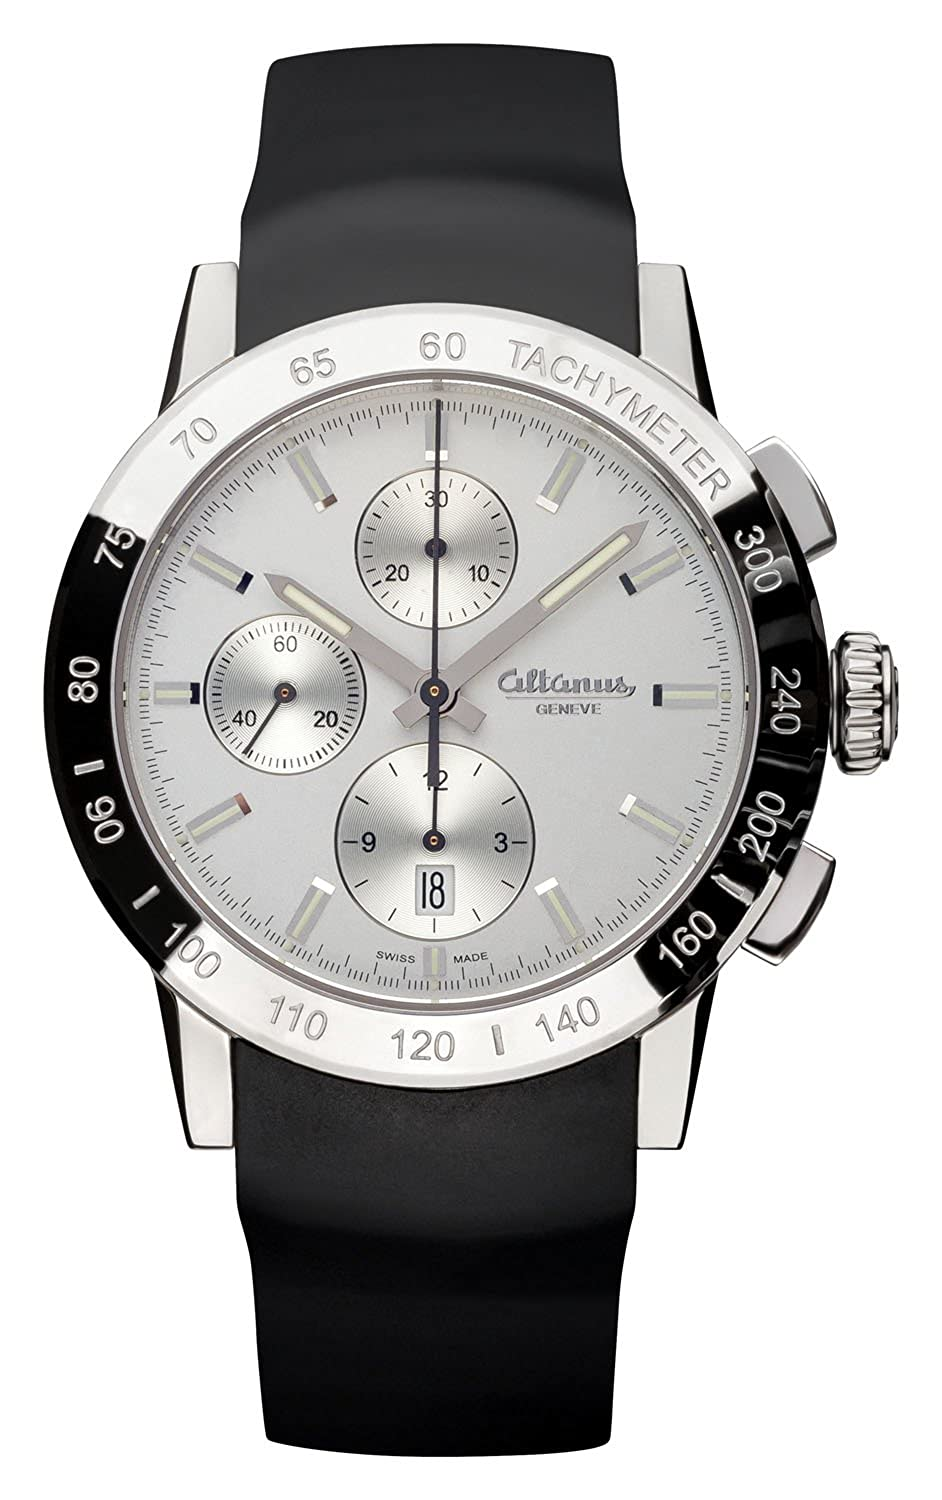 ALTANUS GENEVE Master Sport Automatik Chronograph Uhr Swiss-Made